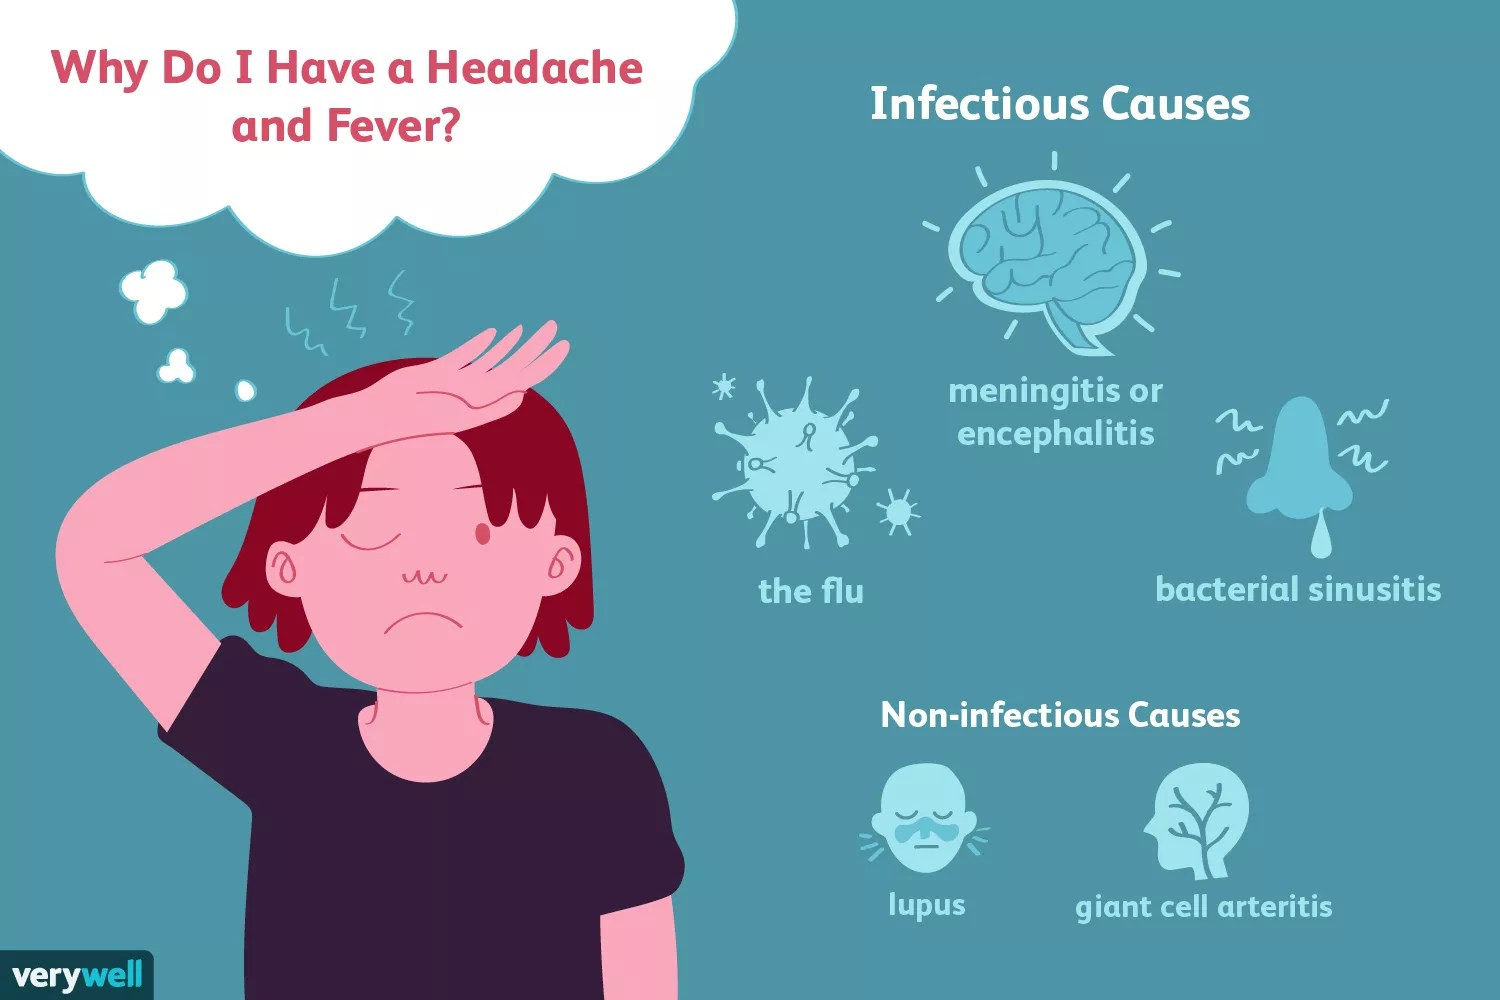 Why Do I Have a Headache and Fever?